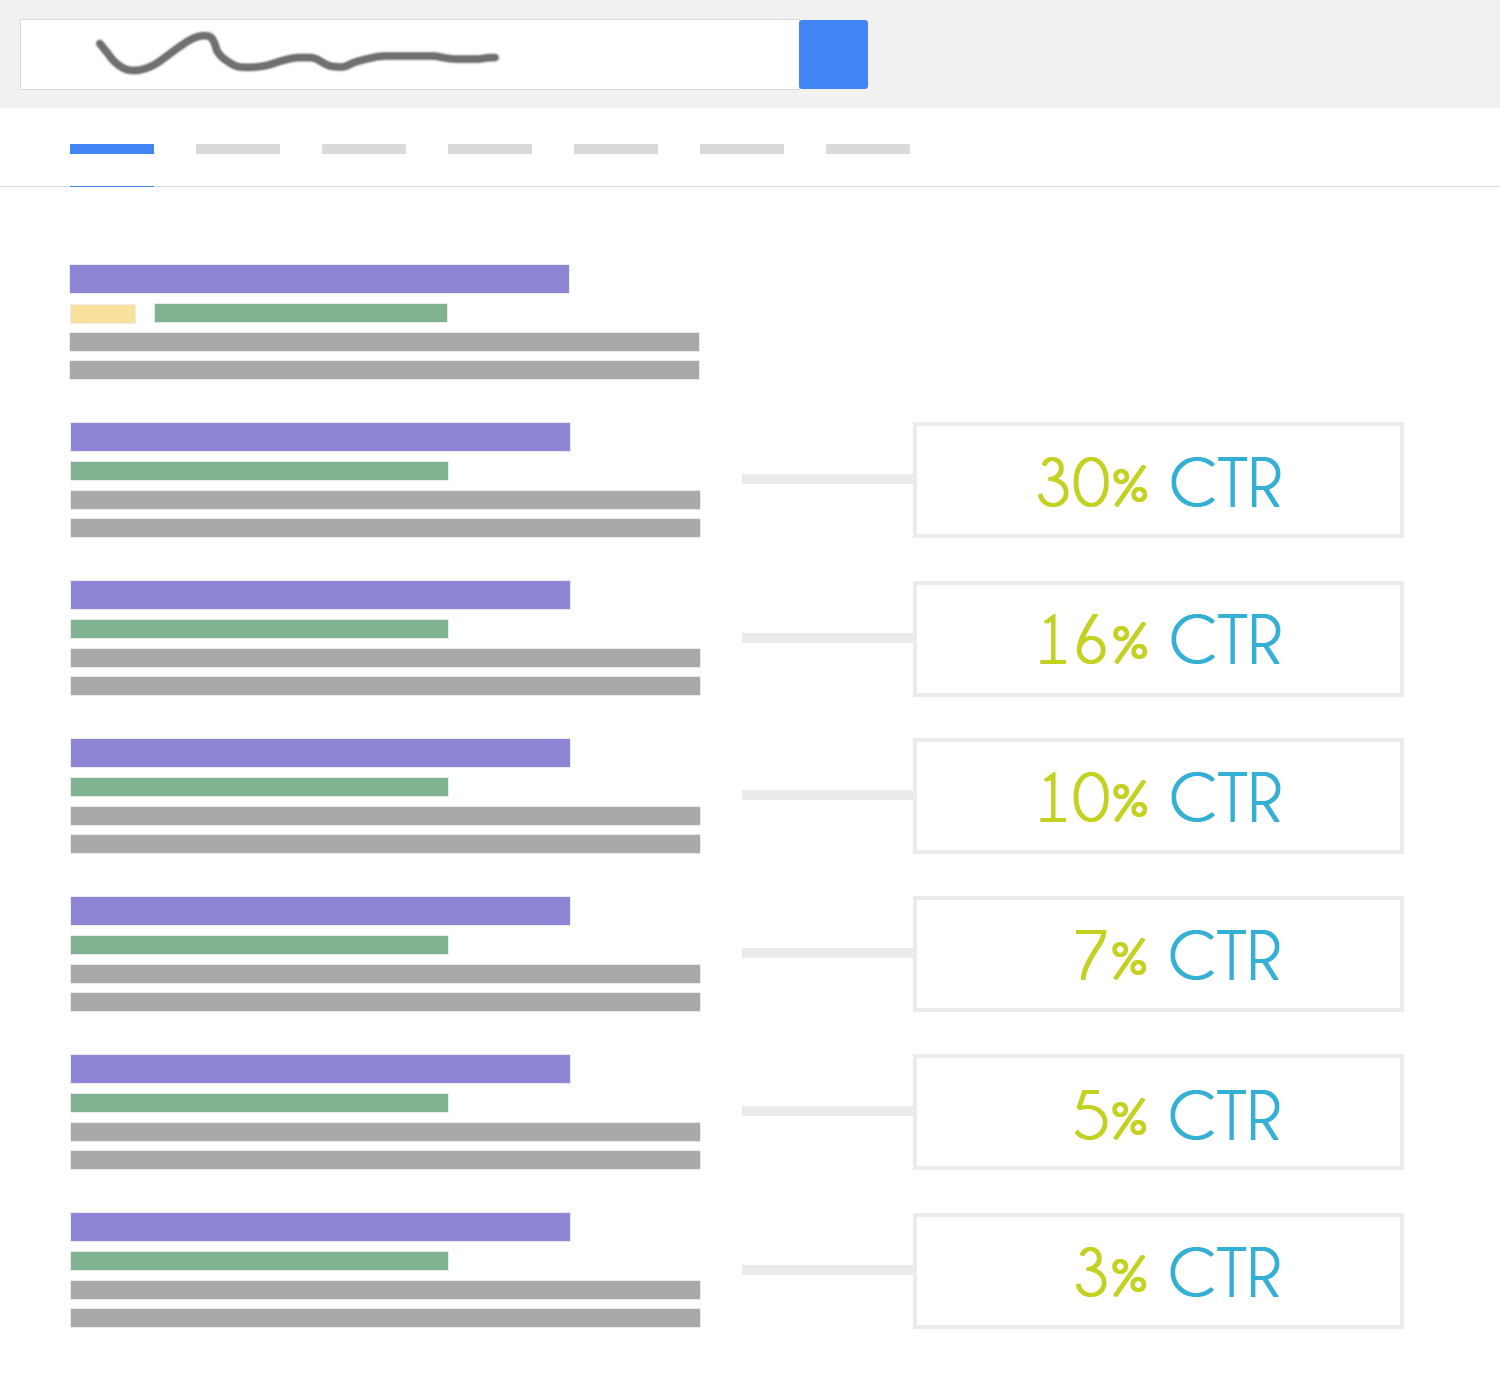 Organic Search SERP Click-Through Rate